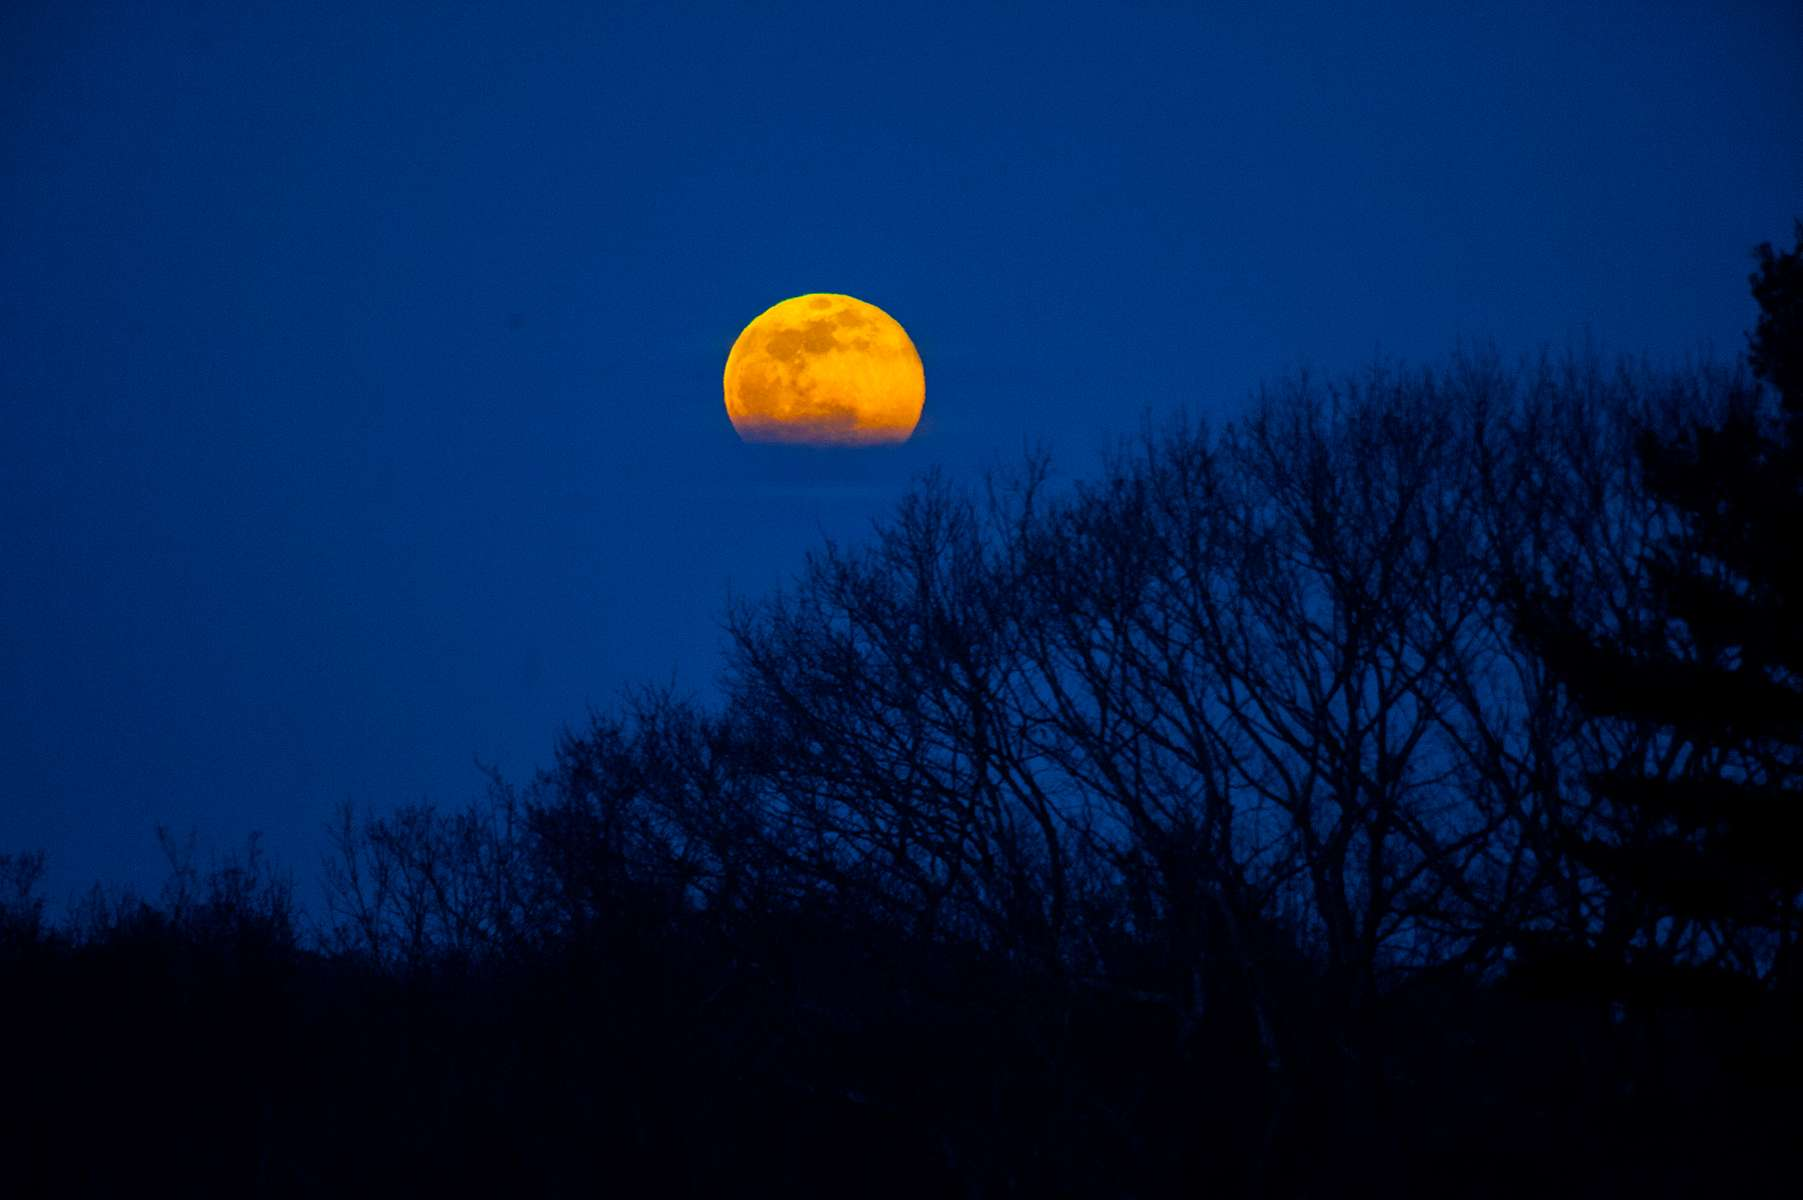 3/09/20-- FRAMINGHAM--  View of the full moon Monday evening  known as the {quote}worm moon{quote} from the Coco Ridge Trail at Callahan State Park. A super moon occurs when the moon's orbit is closest (perigee) to earth at the same time it is full, according to NASA.  It is called a worm moon because it happens when the ground is soft enough to allow earthworms to appear, marking the beginning of Spring.  [Daily News and Wicked Local Staff Photo/Art Illman]